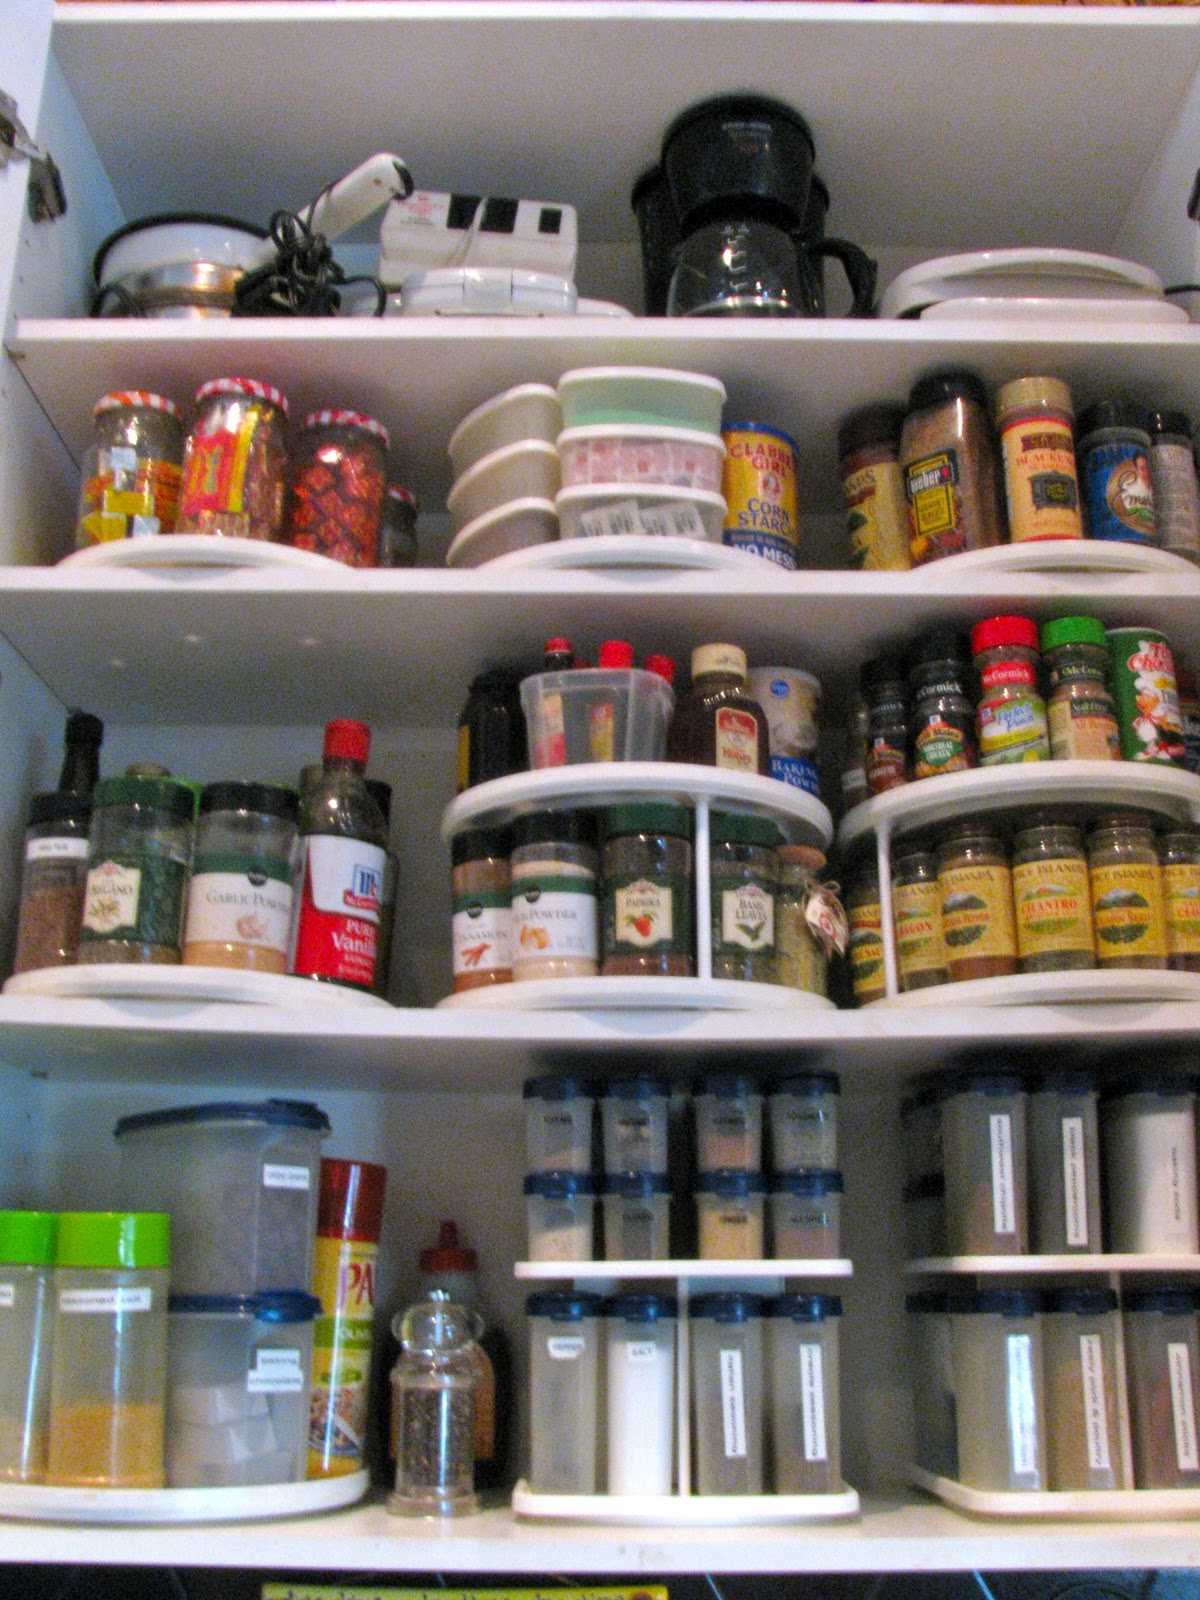 MAY DAYS: Organizing The Pantry